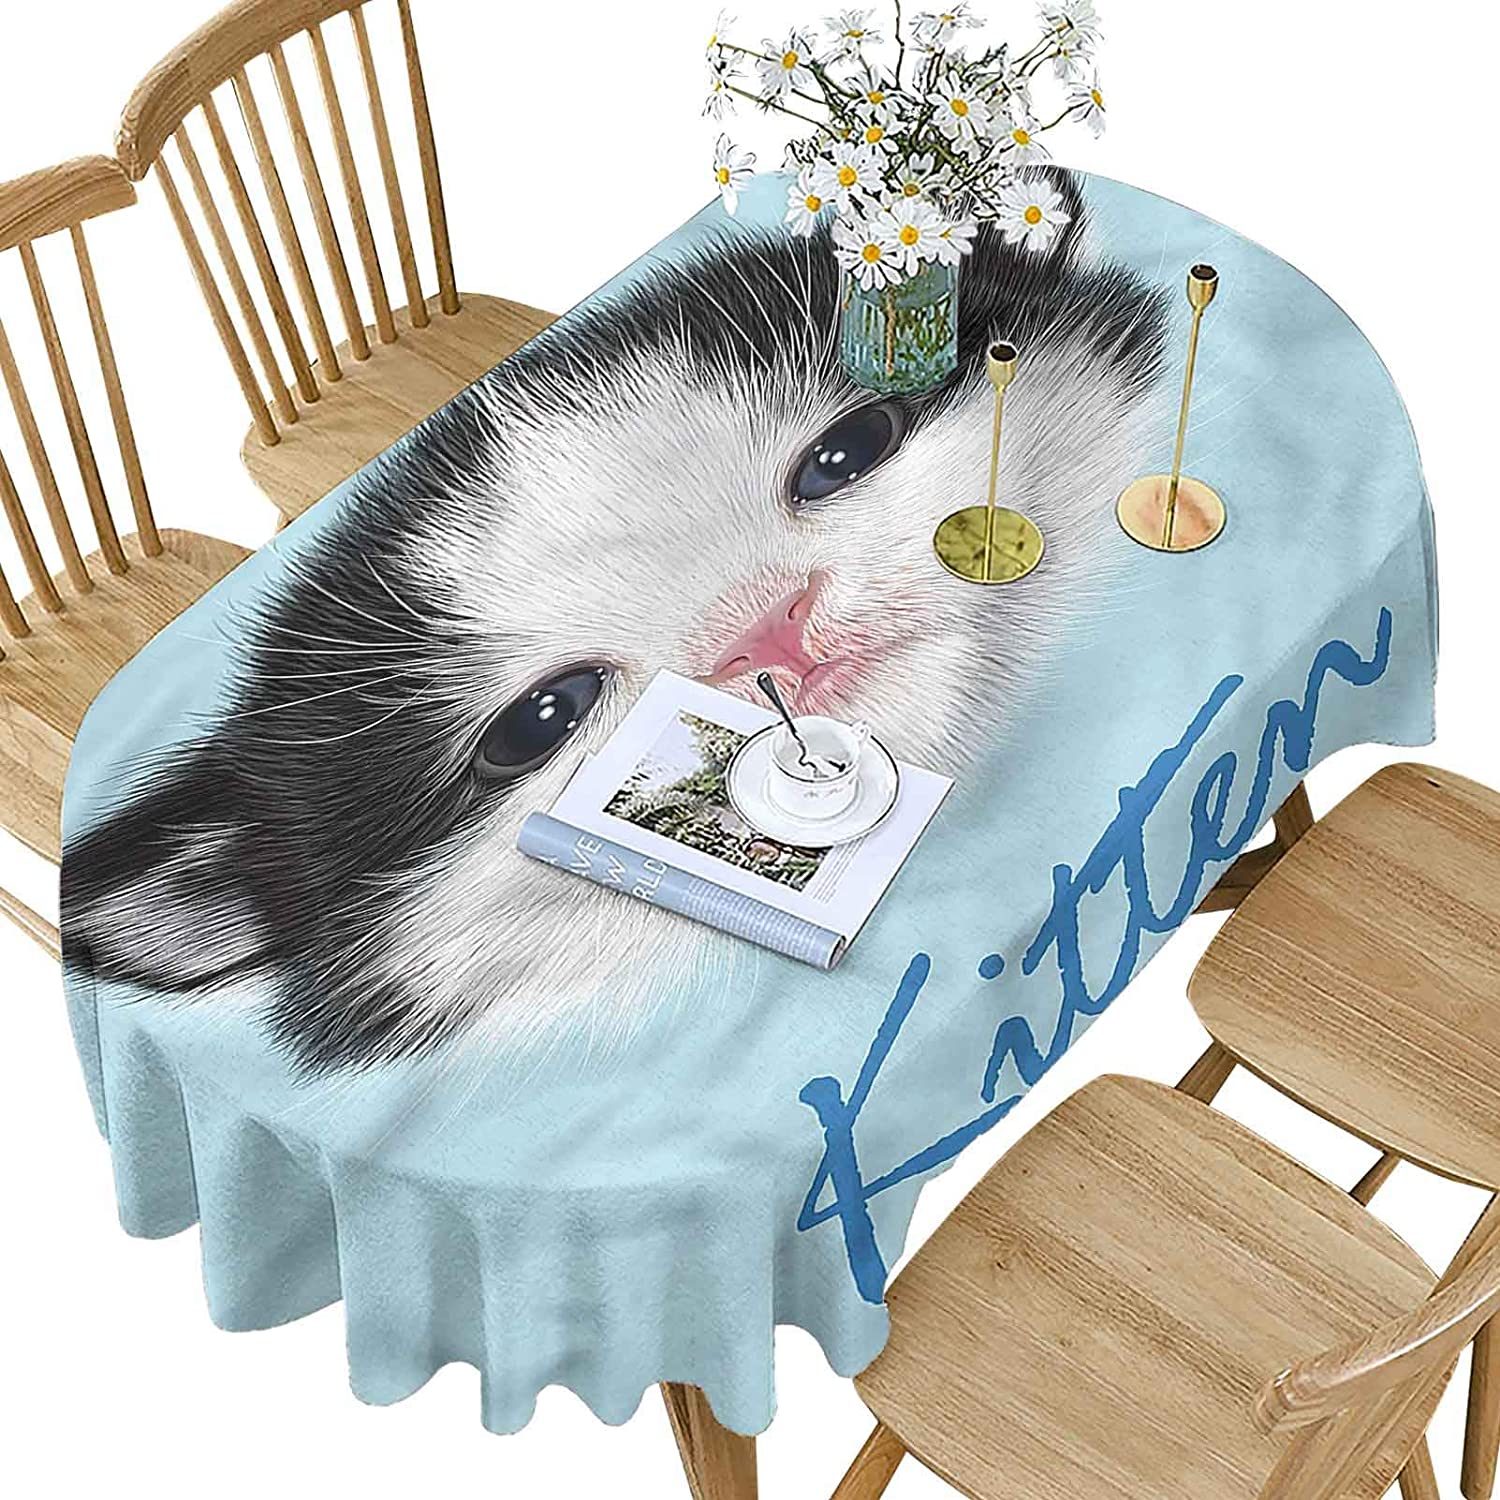 Cartoon Polyester Oval Limited price Tablecloth Furry Pattern Pink Nose Kitten 35% OFF